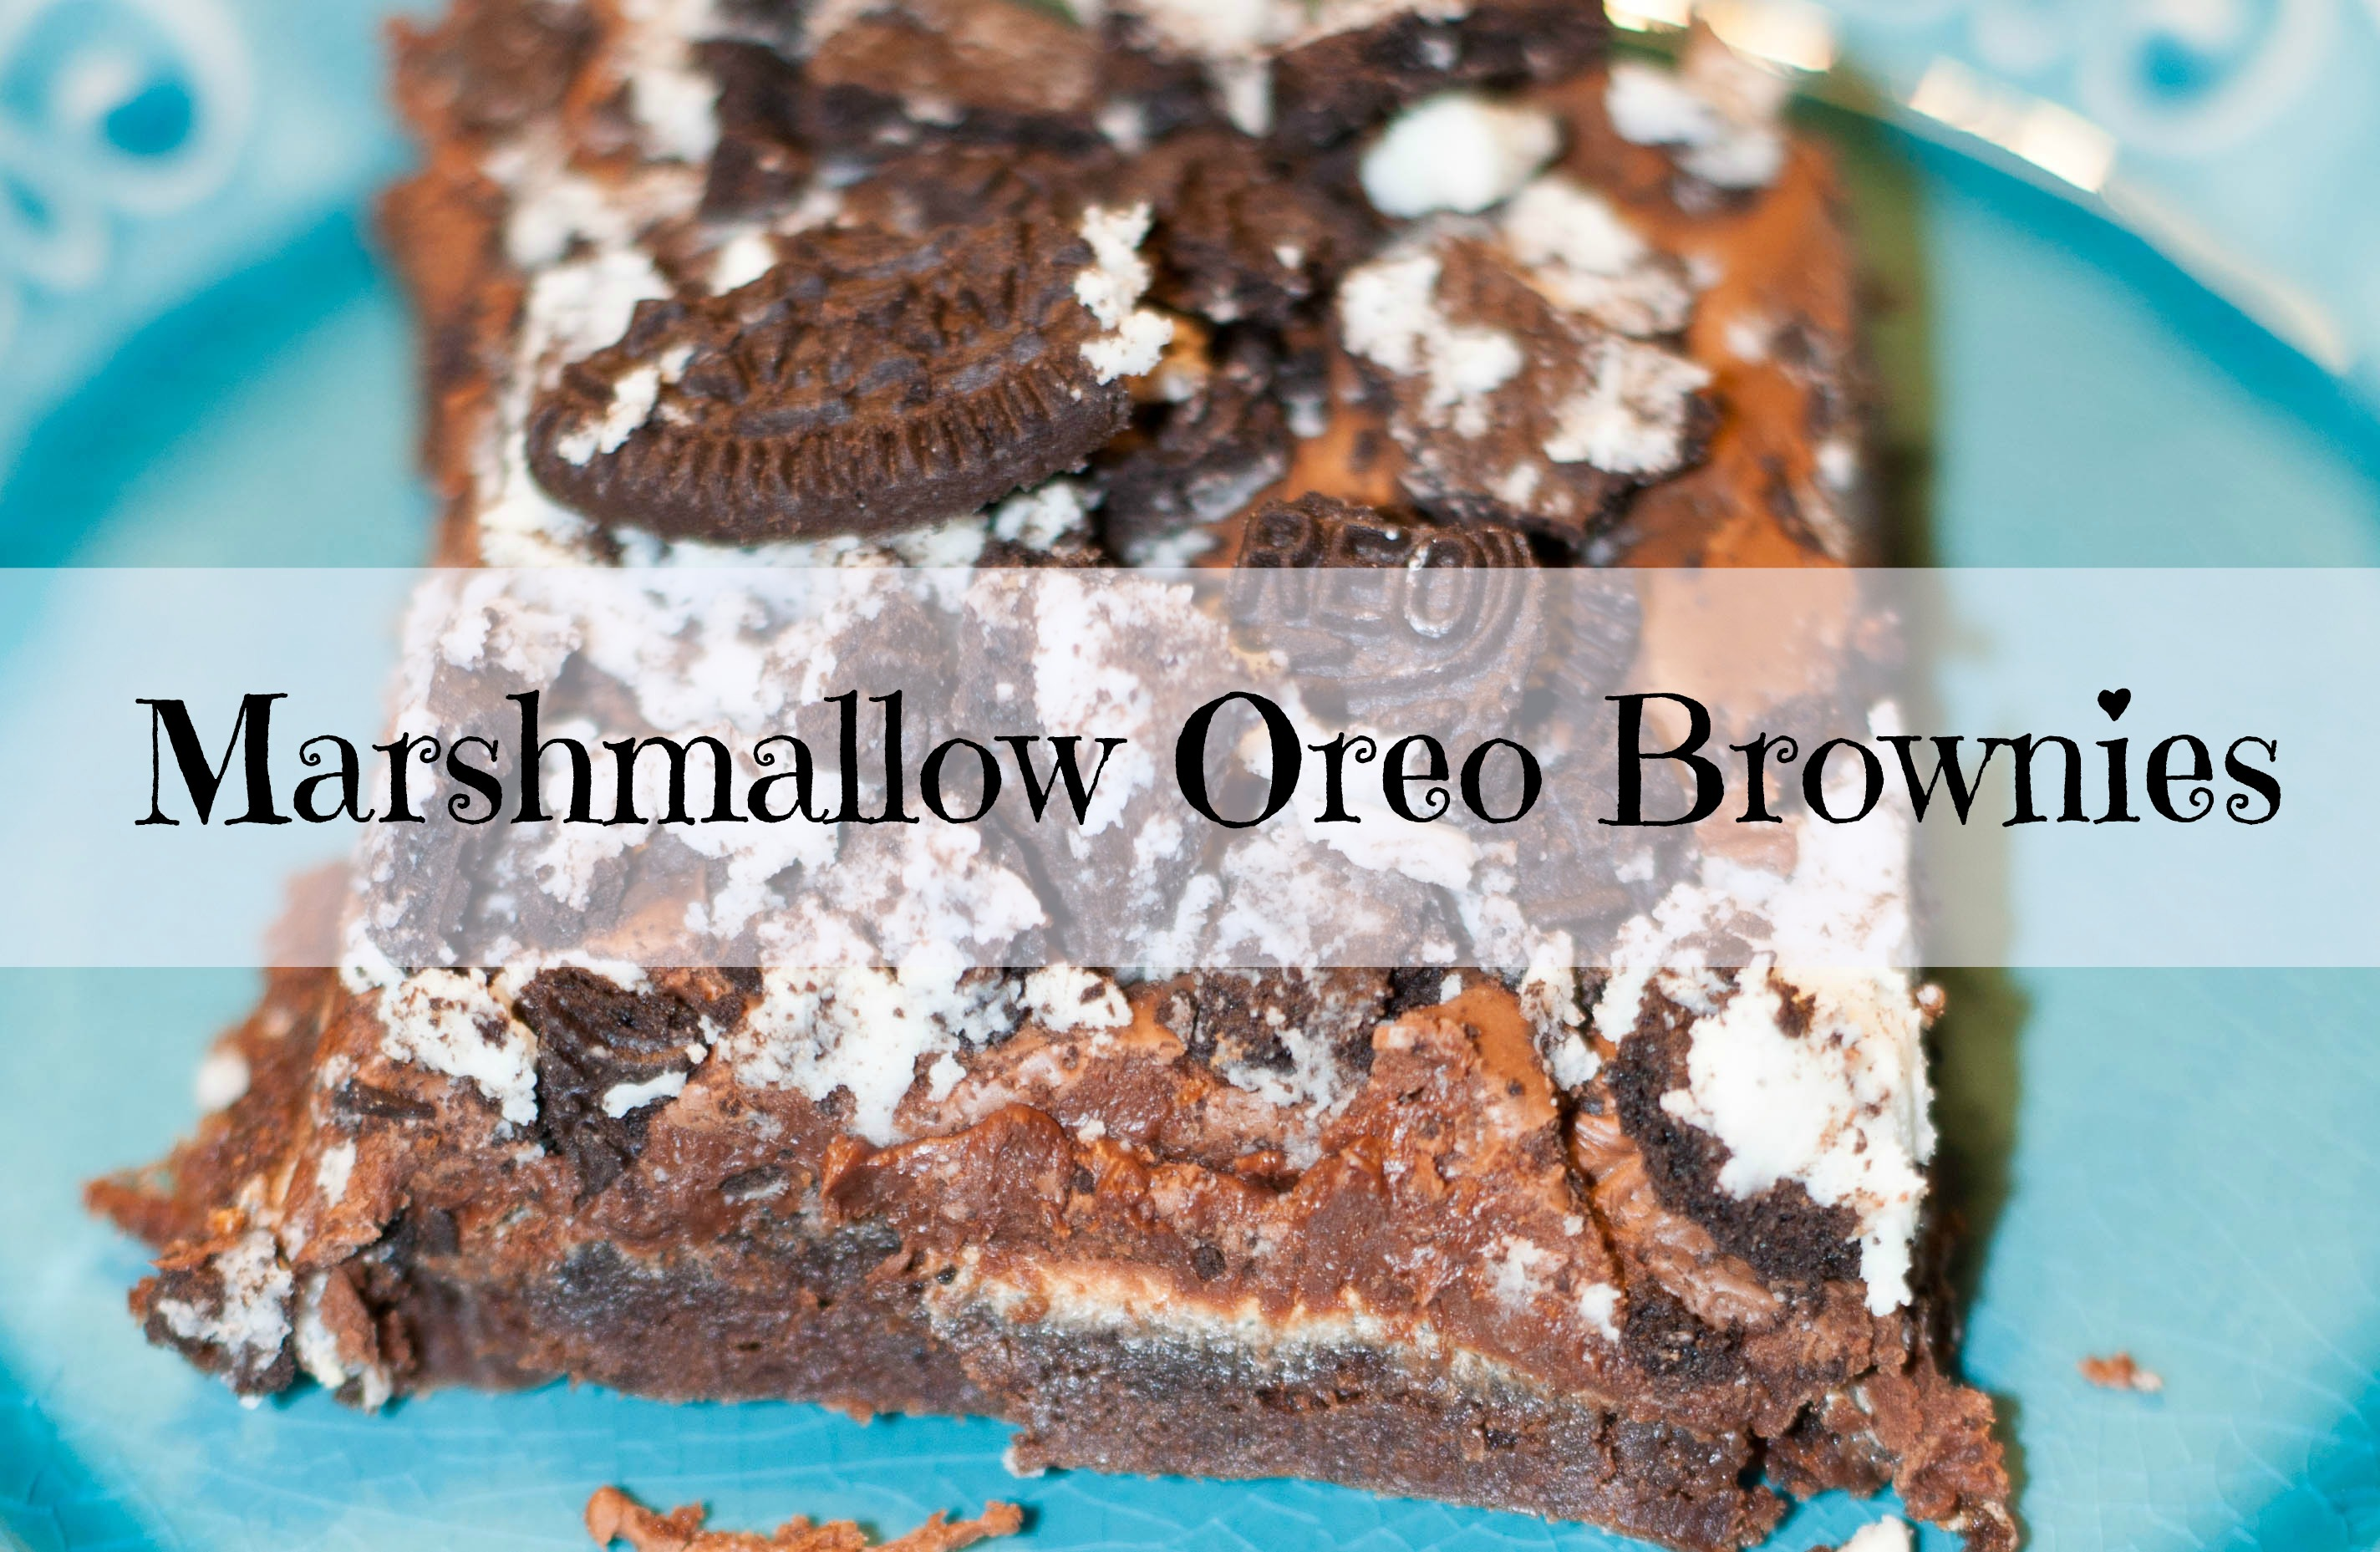 Marshmallow Oreo Brownies